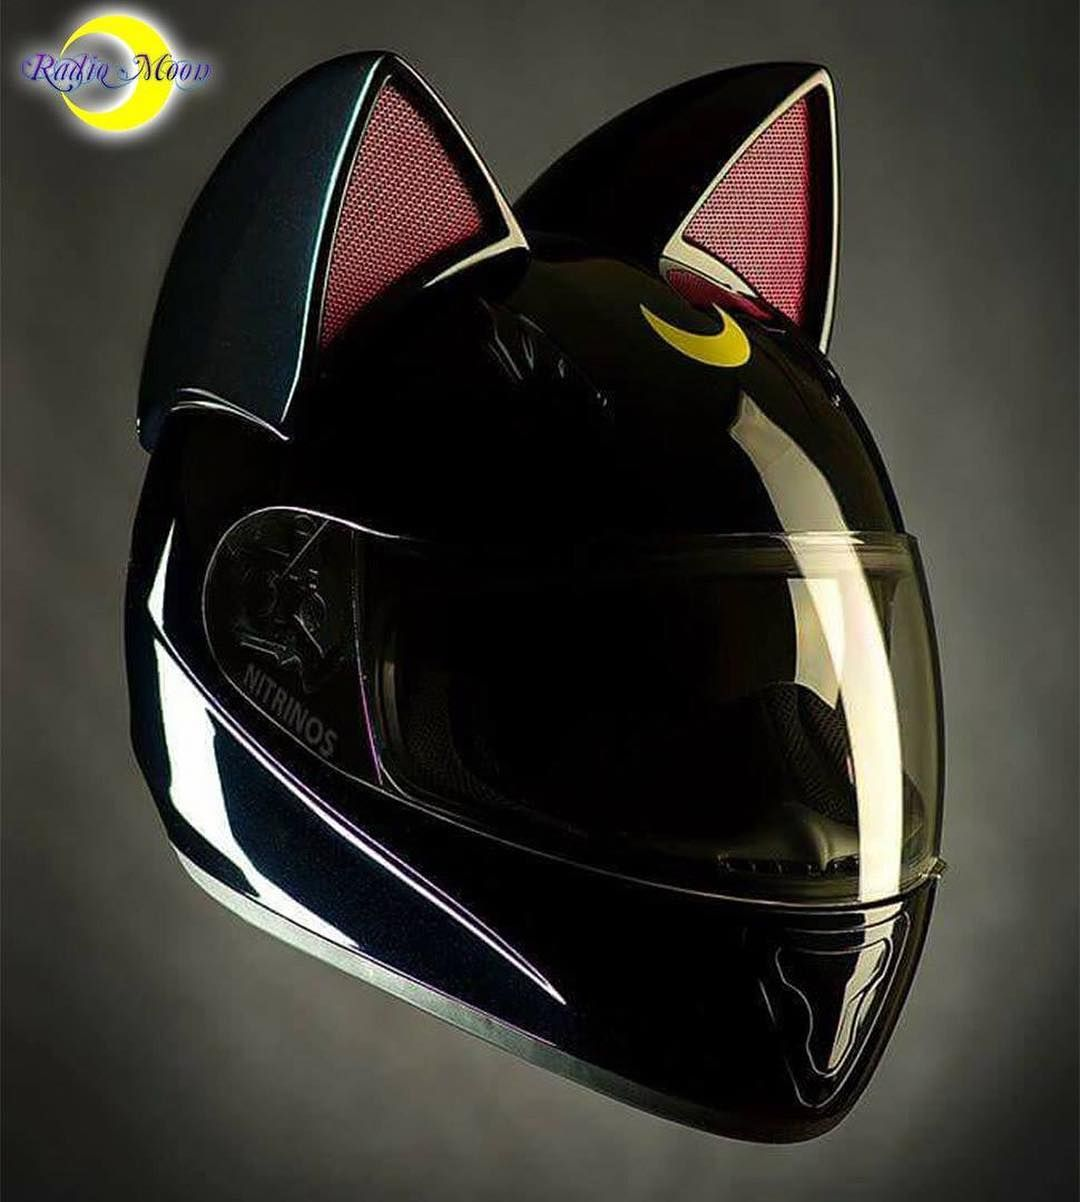 If I Ever Need A Motorcycle Helmet Then I Want This One